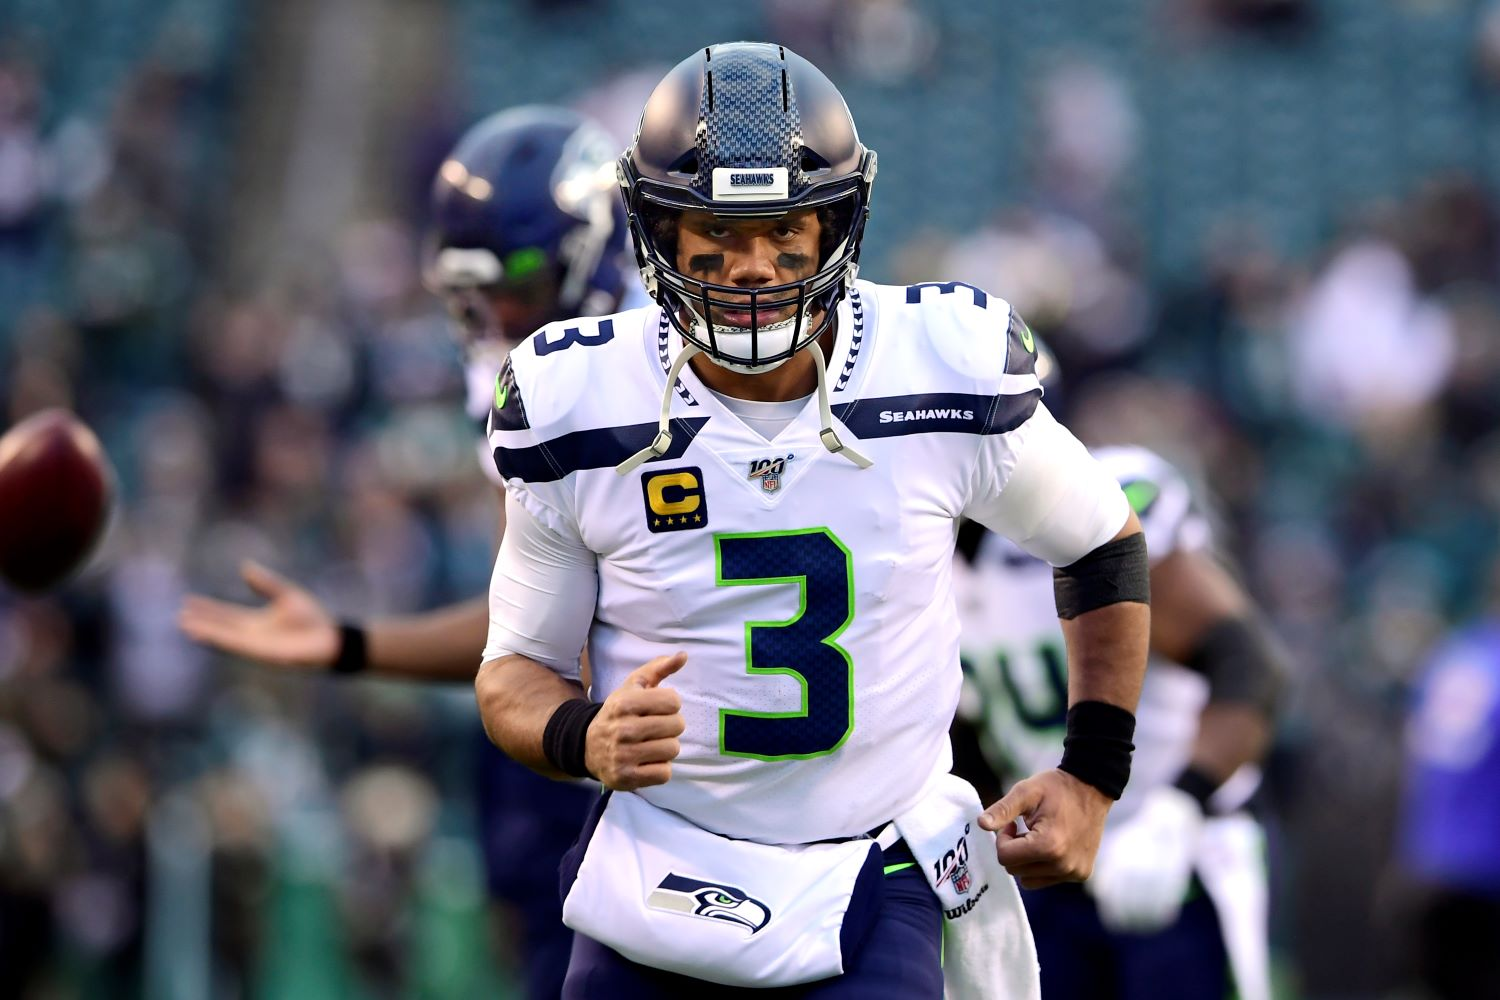 The return of Greg Olsen gives Russell Wilson and the Seattle Seahawks a much better chance of stealing the No. 1 seed in the NFC.